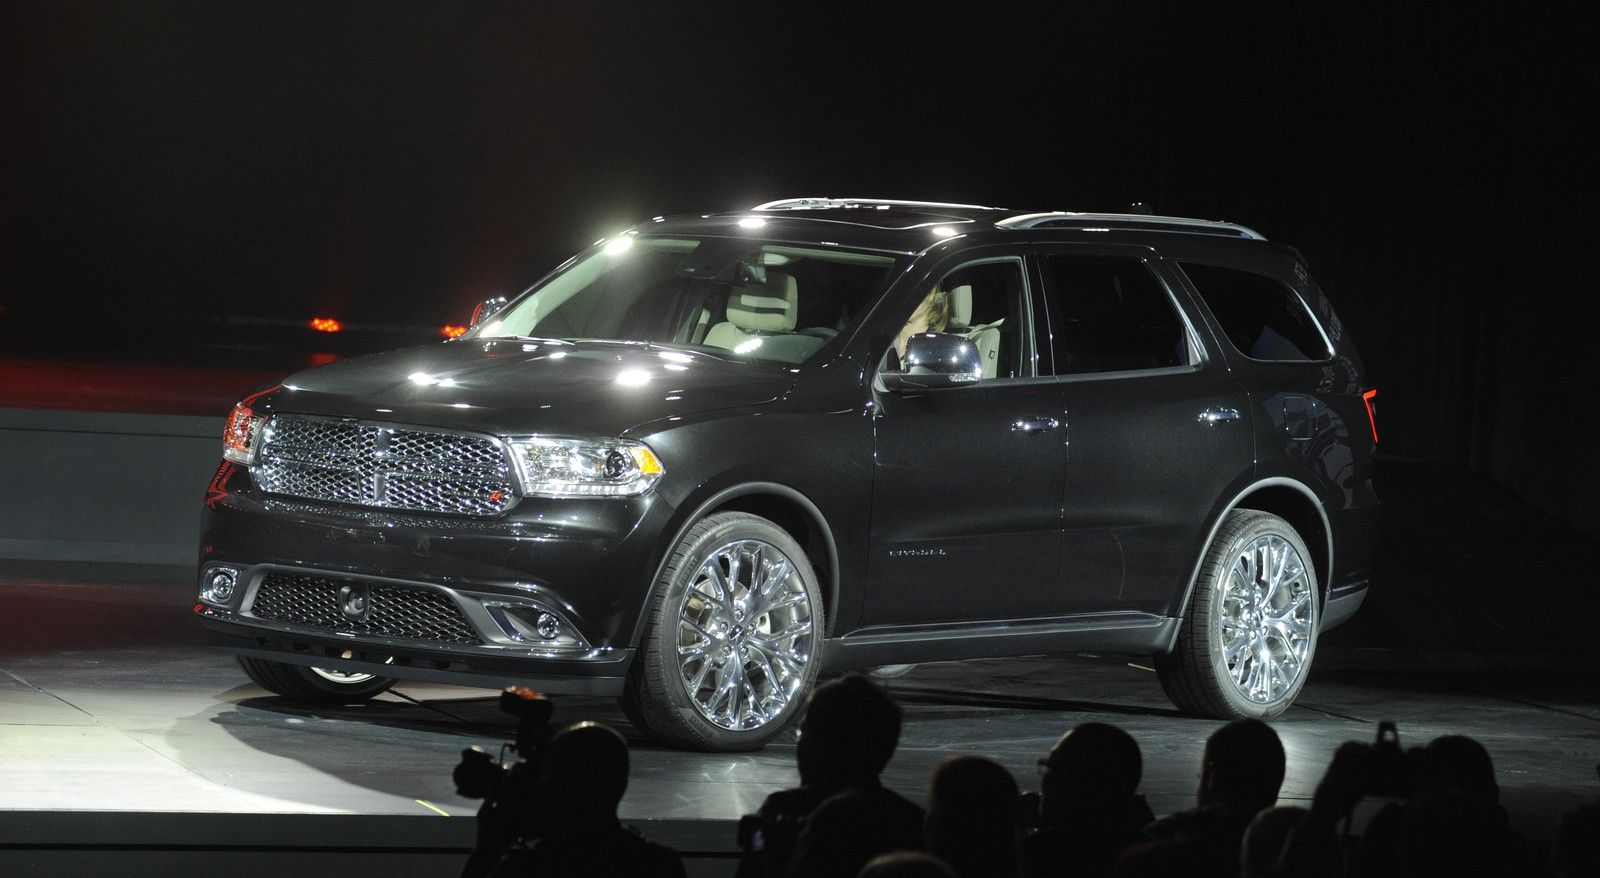 New 2019 dodge durango release date and price